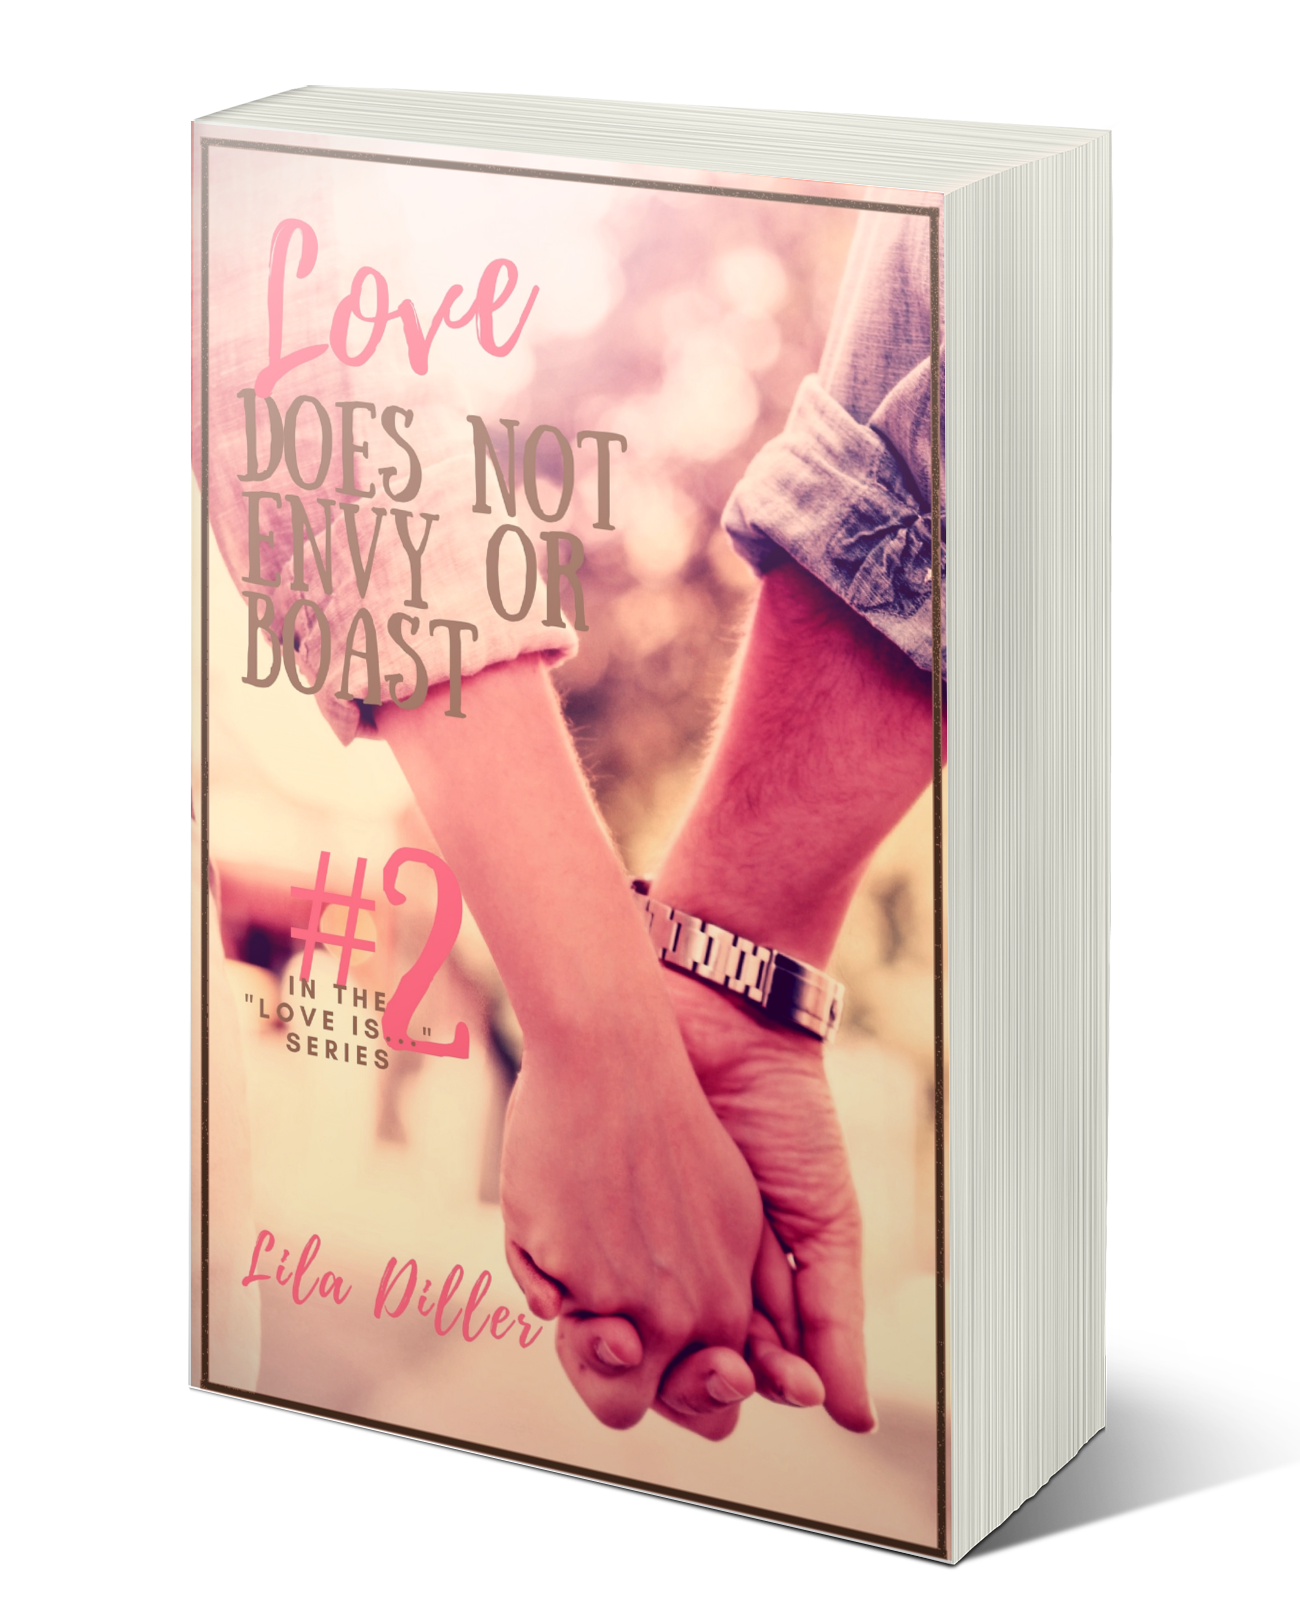 "Love Does Not Envy or Boast   by Lila Diller, #2 in the ""Love is"" series."